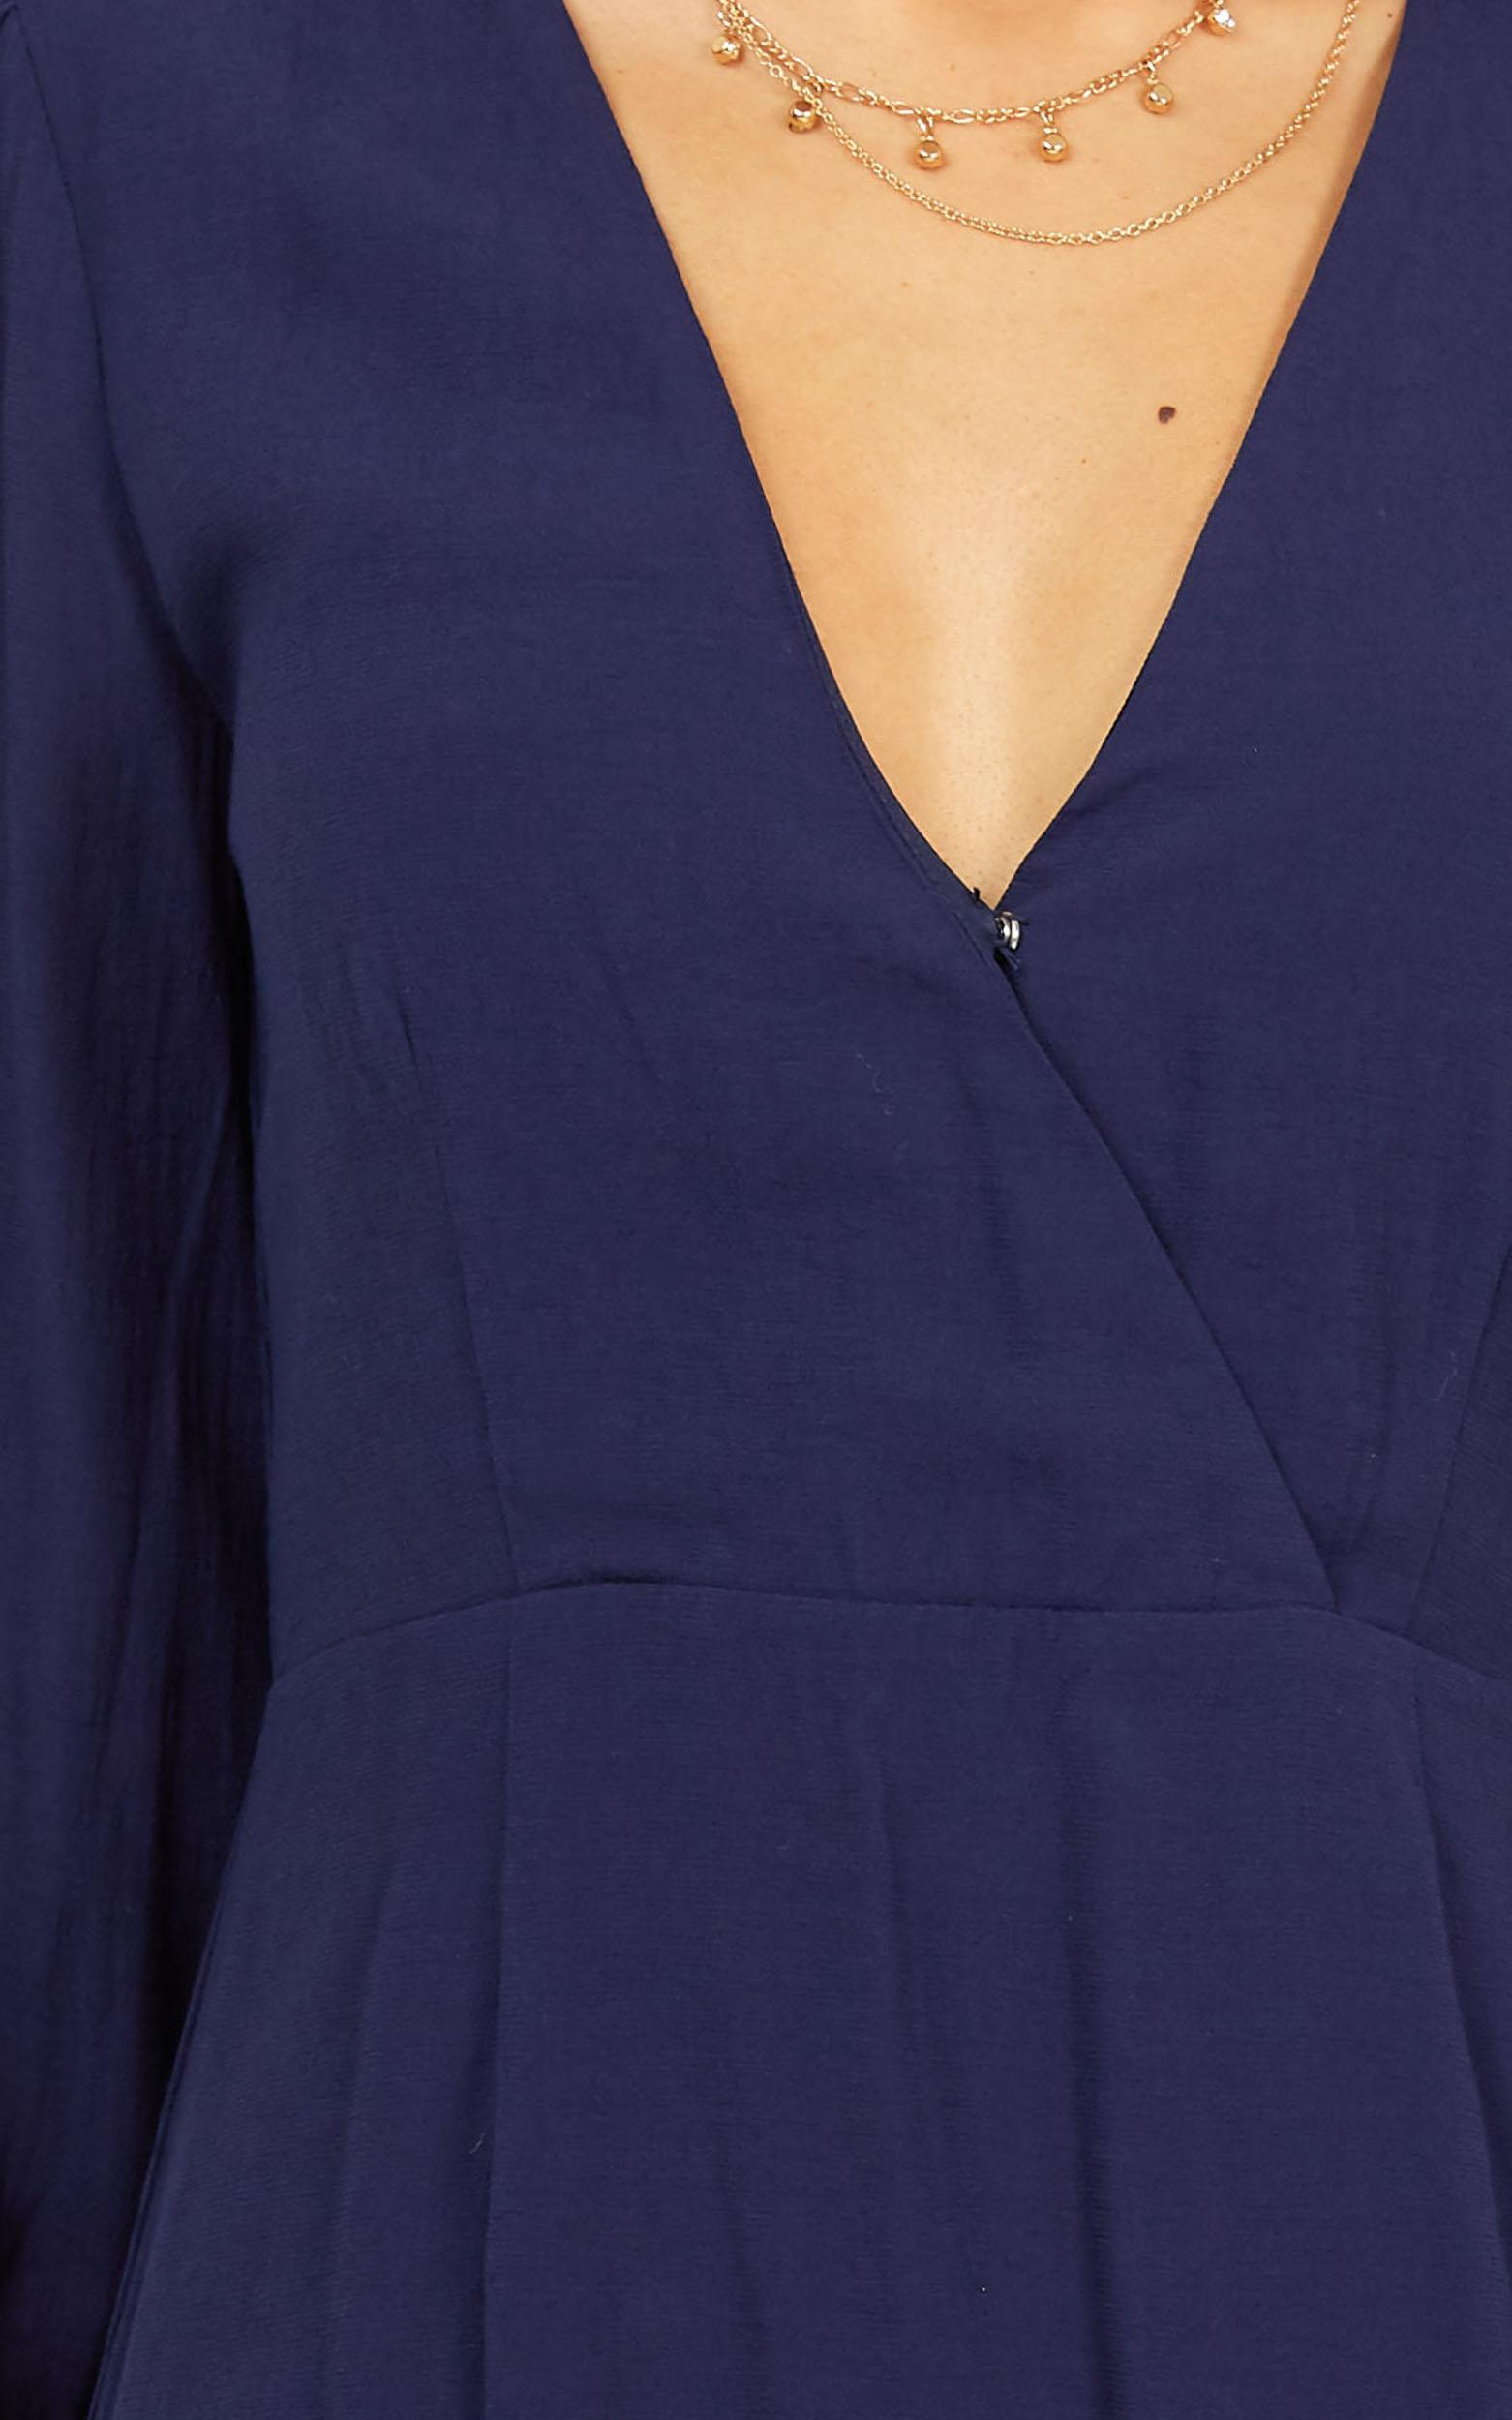 Fire Side Dress in navy - 20 (XXXXL), Navy, hi-res image number null